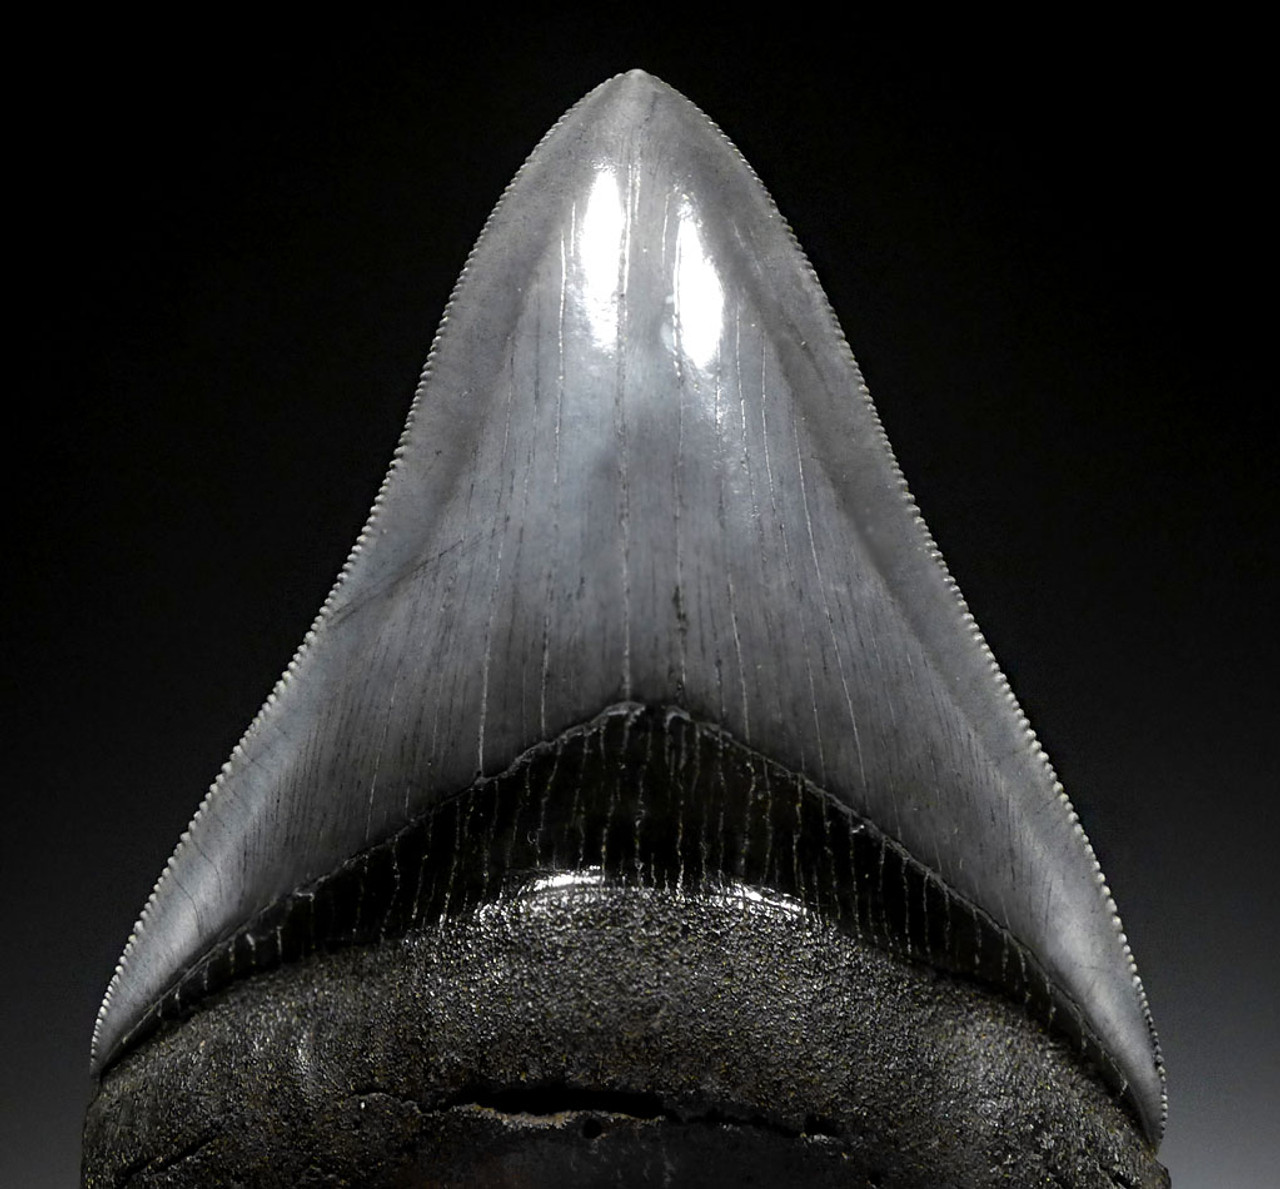 SH6-408 - FINEST GRADE 4.25 INCH MEGALODON SHARK TOOTH WITH CHATOYANT BLUE-GRAY